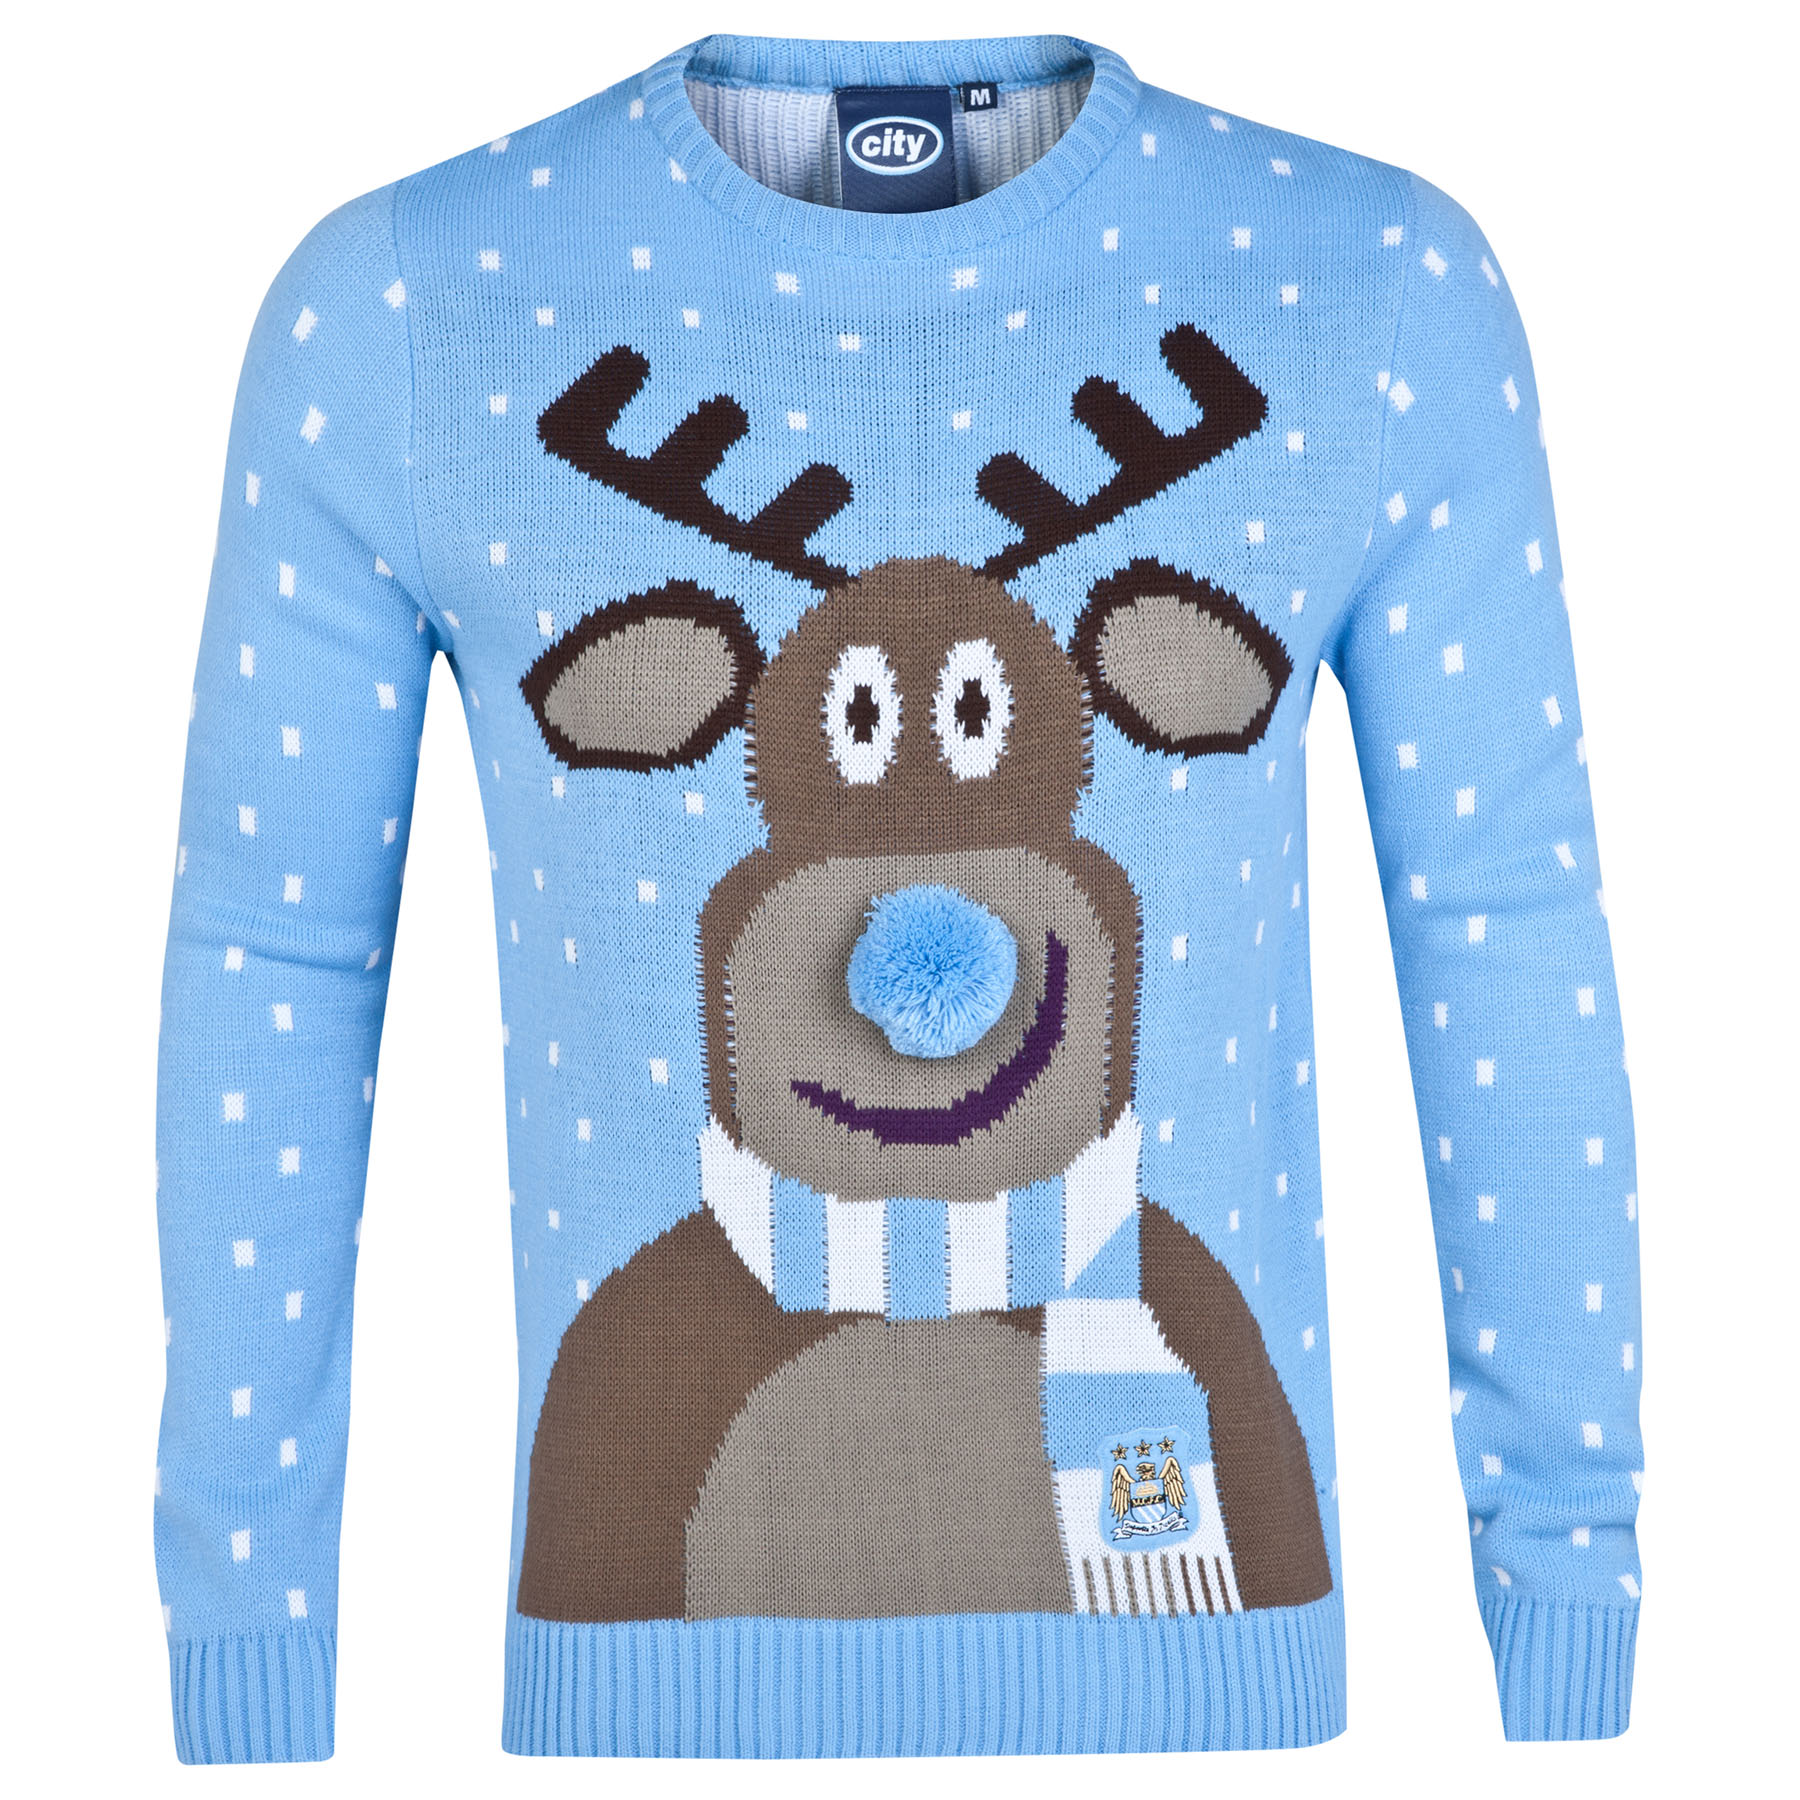 Manchester City Christmas Jumper - Sky - Adult